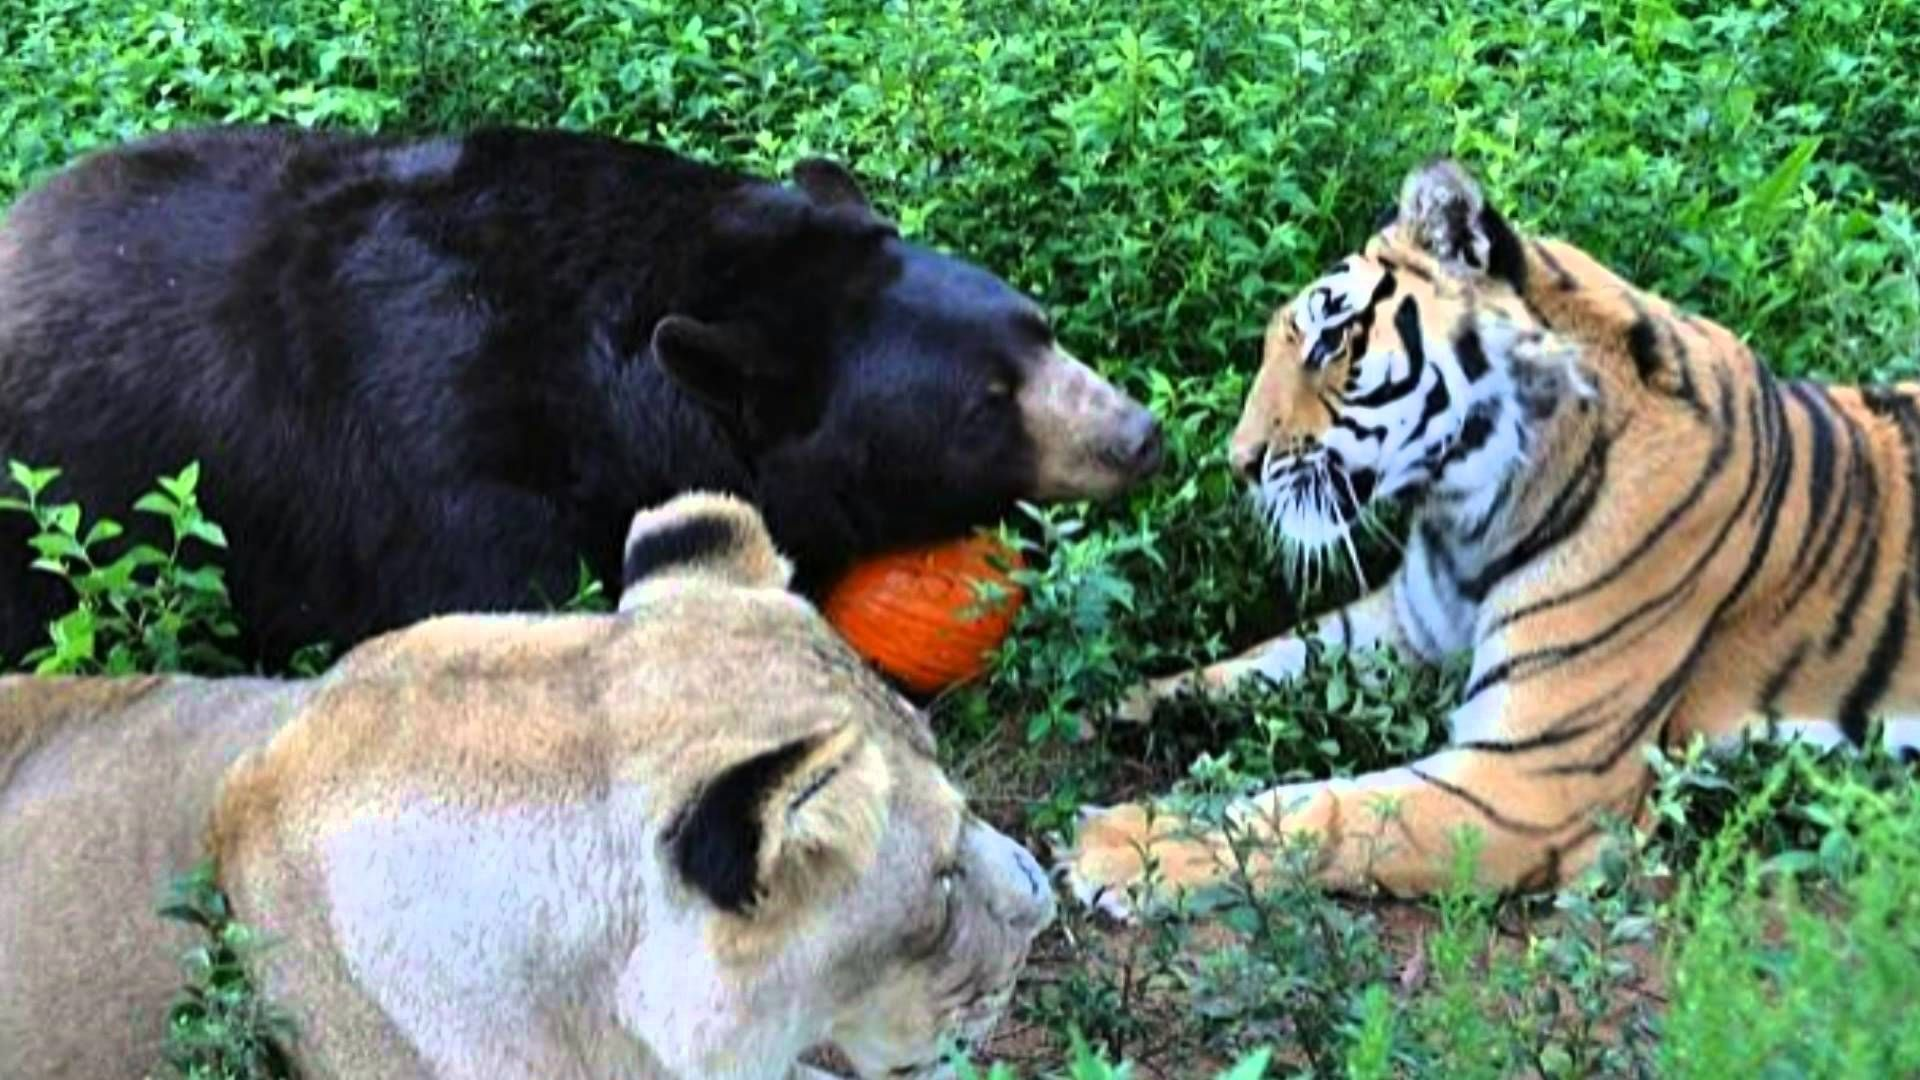 Amazing story of unlikely friendship between a bear, lion